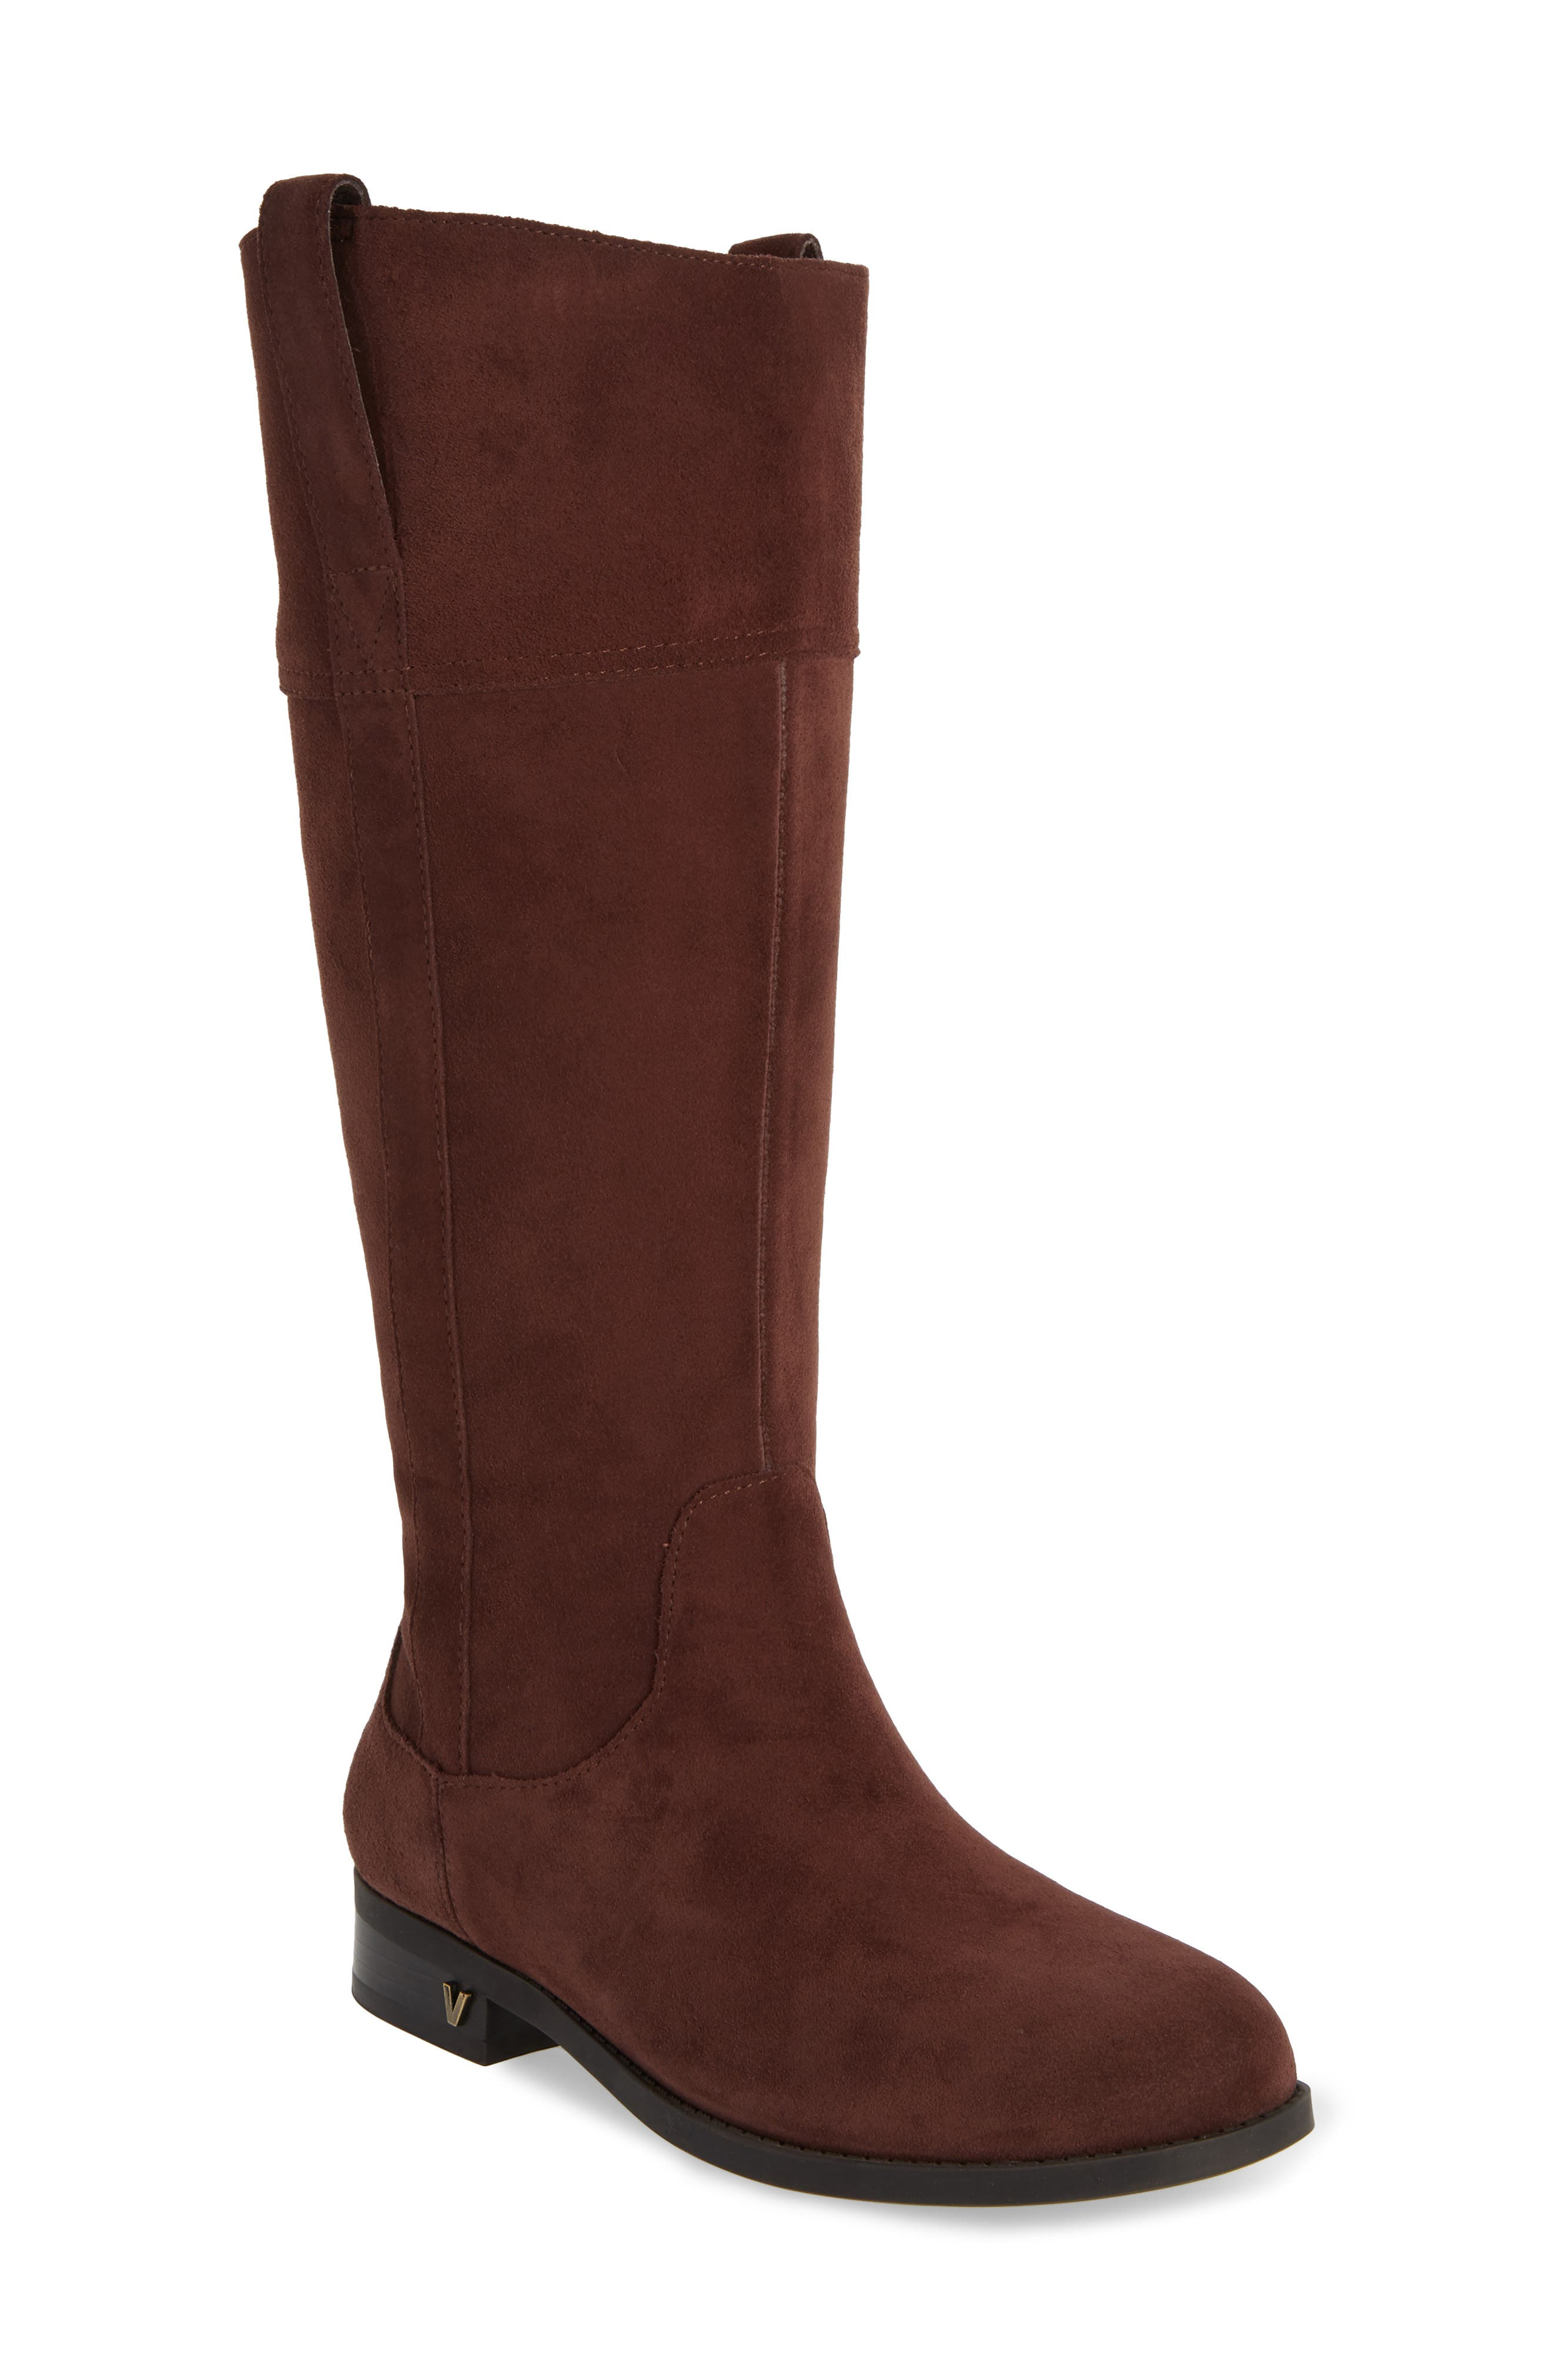 Vionic Downing Boot- Brown